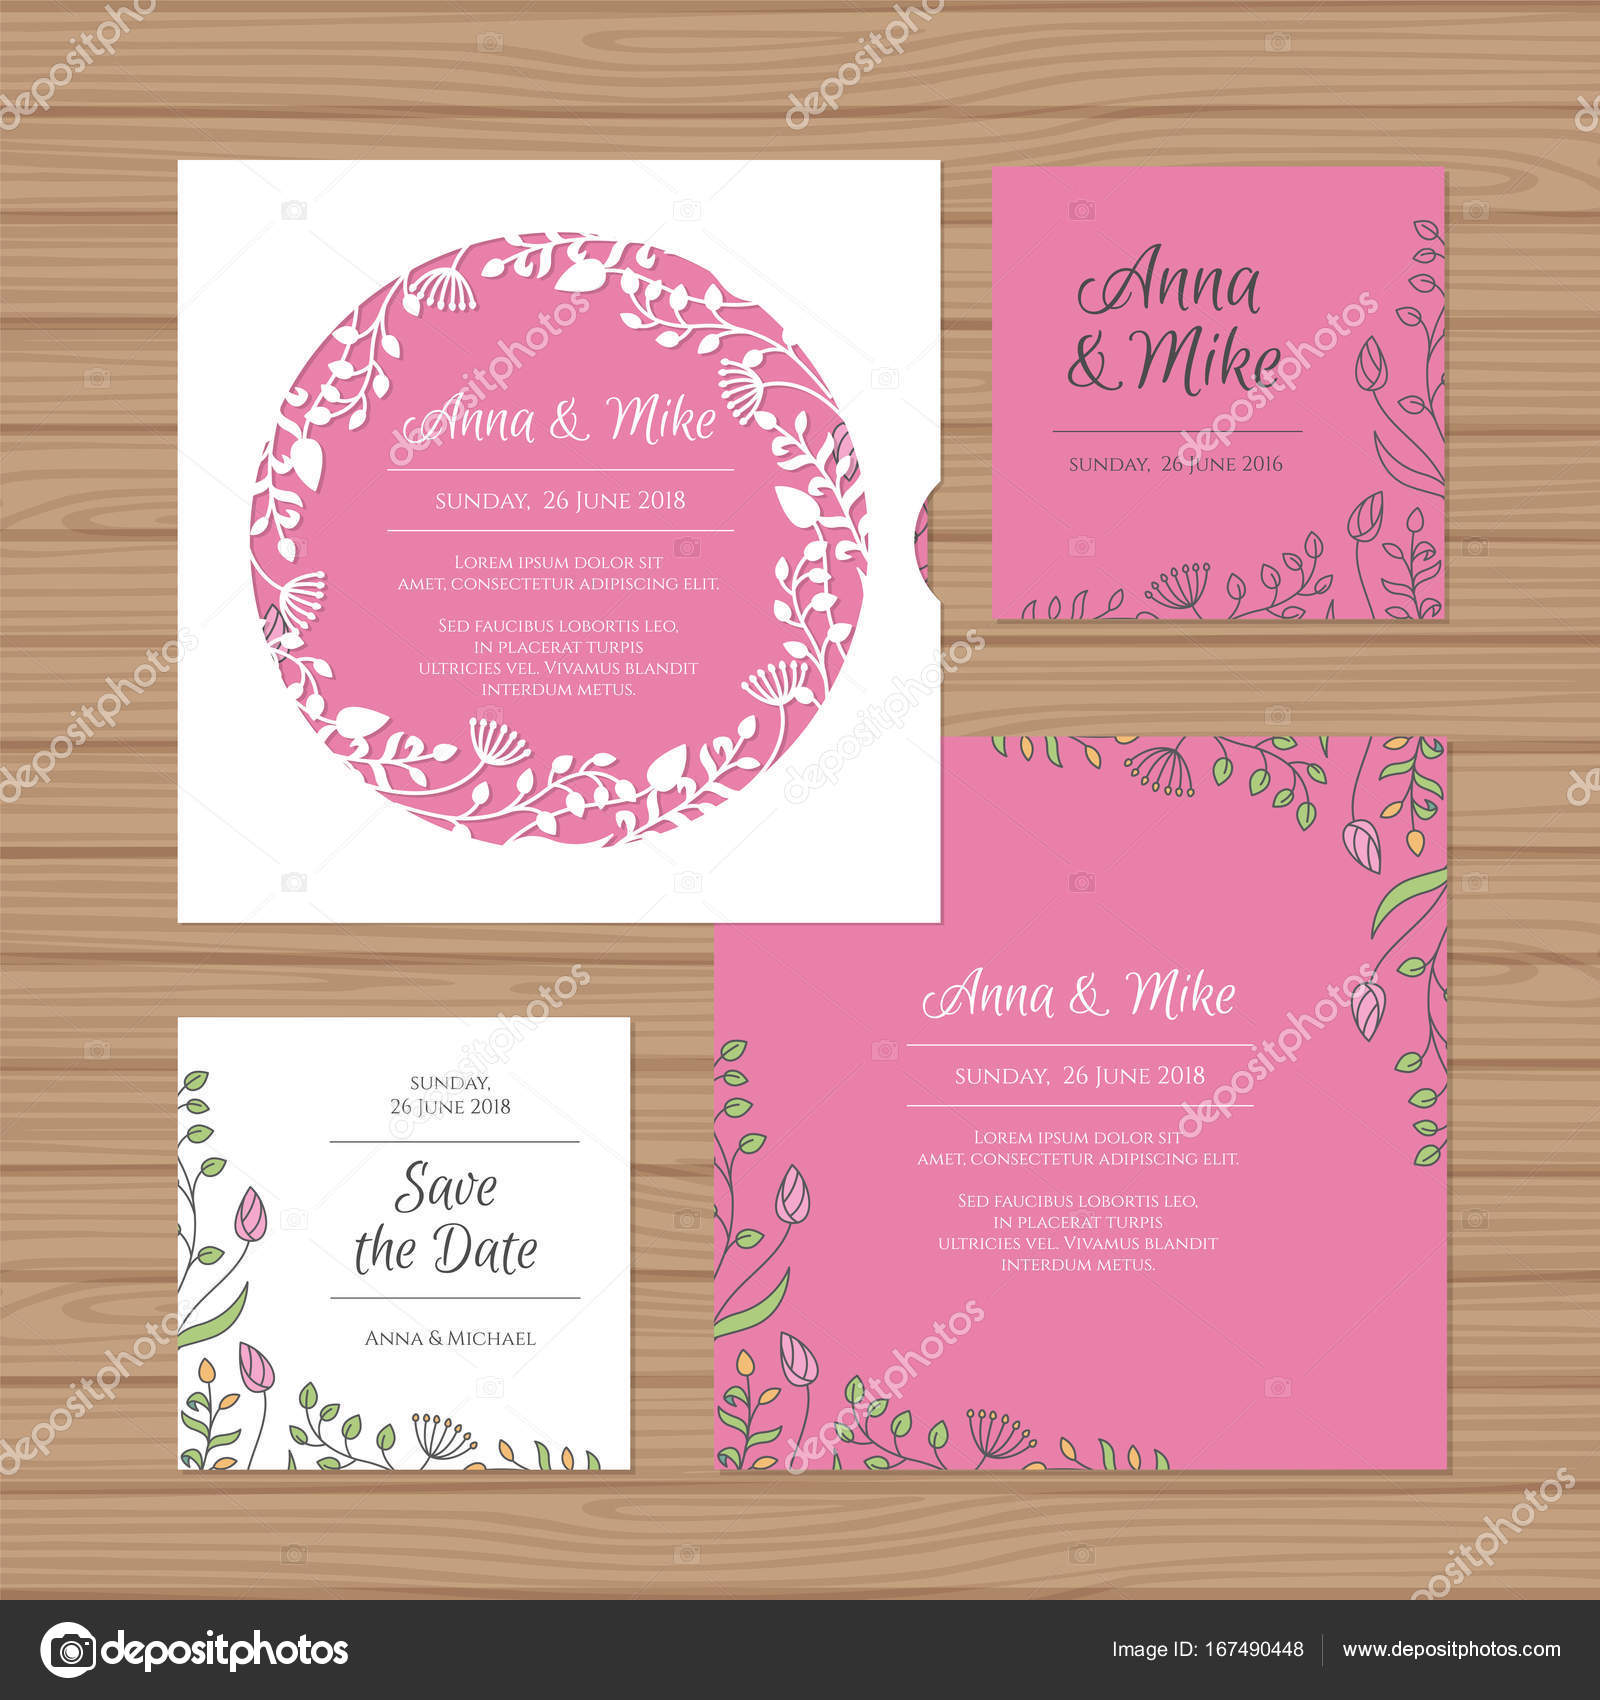 Wedding invitation or greeting card with flower wreath cut laser wedding invitation or greeting card with flower wreath cut laser square envelope template wedding m4hsunfo